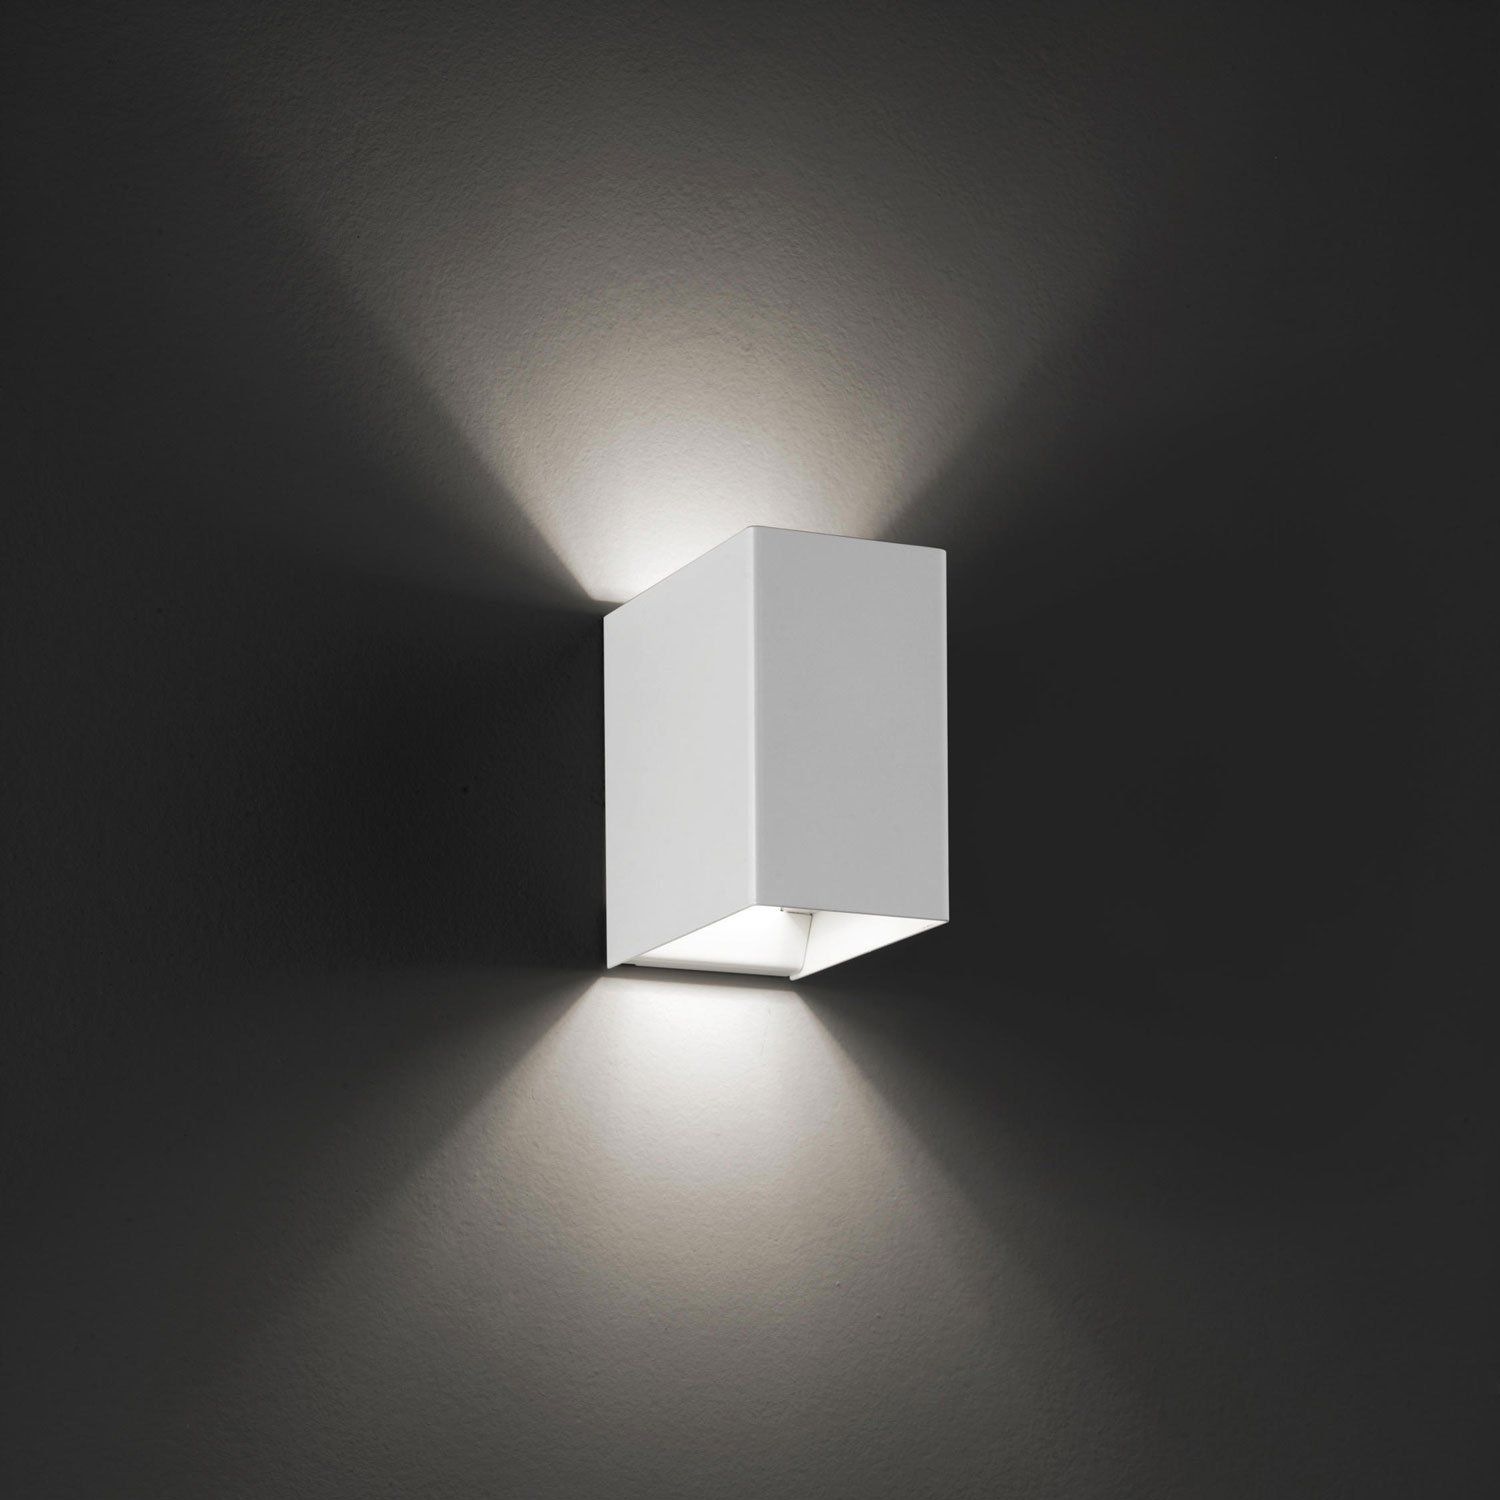 Laser 10x6 Led Wall Sconce In 2020 Wall Sconces Wall Lighting Design Contemporary Wall Lights